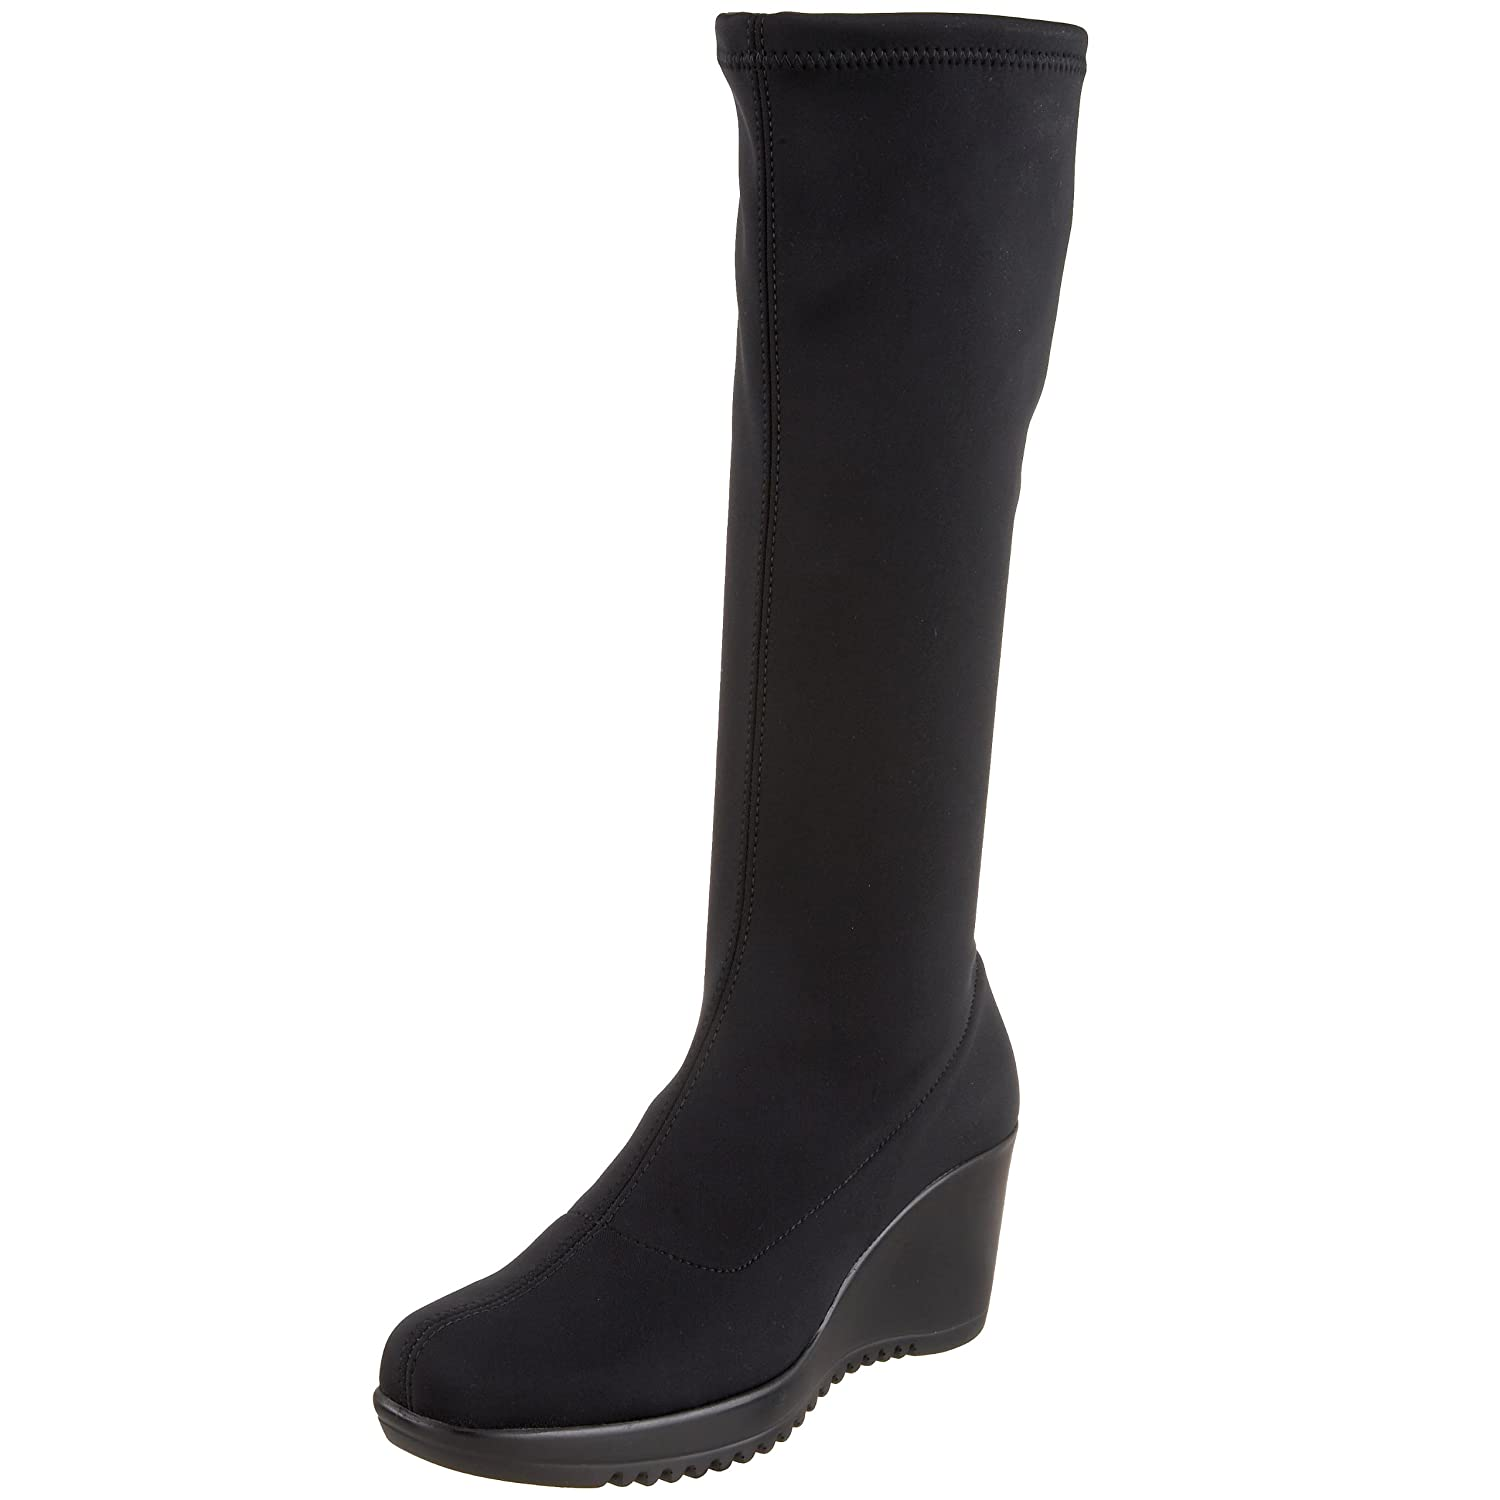 La Canadienne Women's Gaetana Boot B001KS5Y02 8.5 B(M) US|Black Microfibre